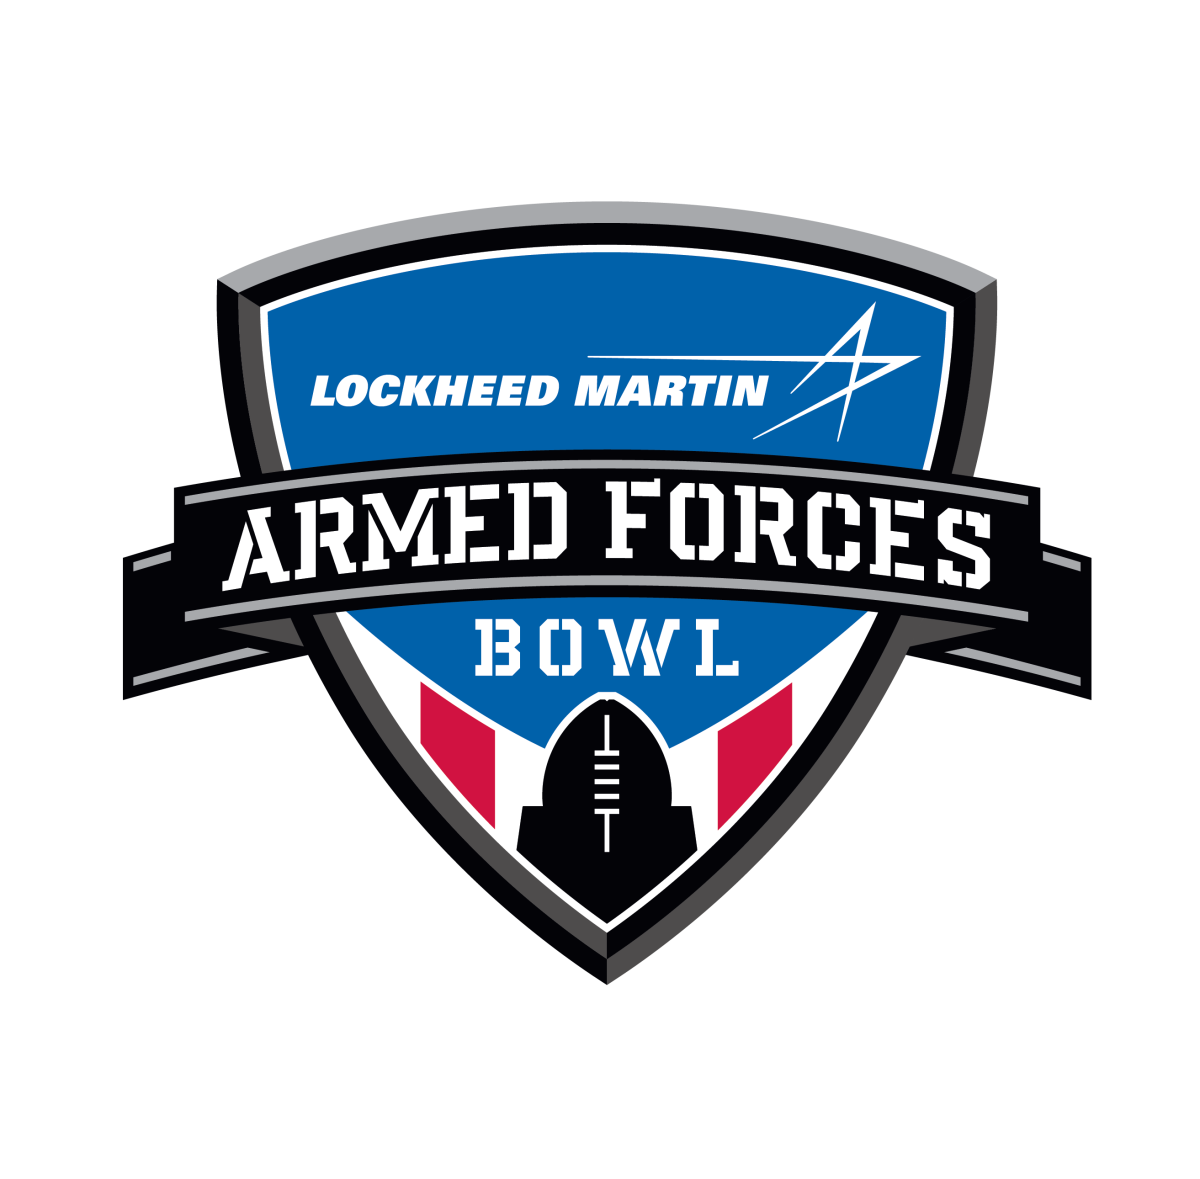 Lockheed Martin Armed Forces Bowl Fort Worth Tx 76129 1376